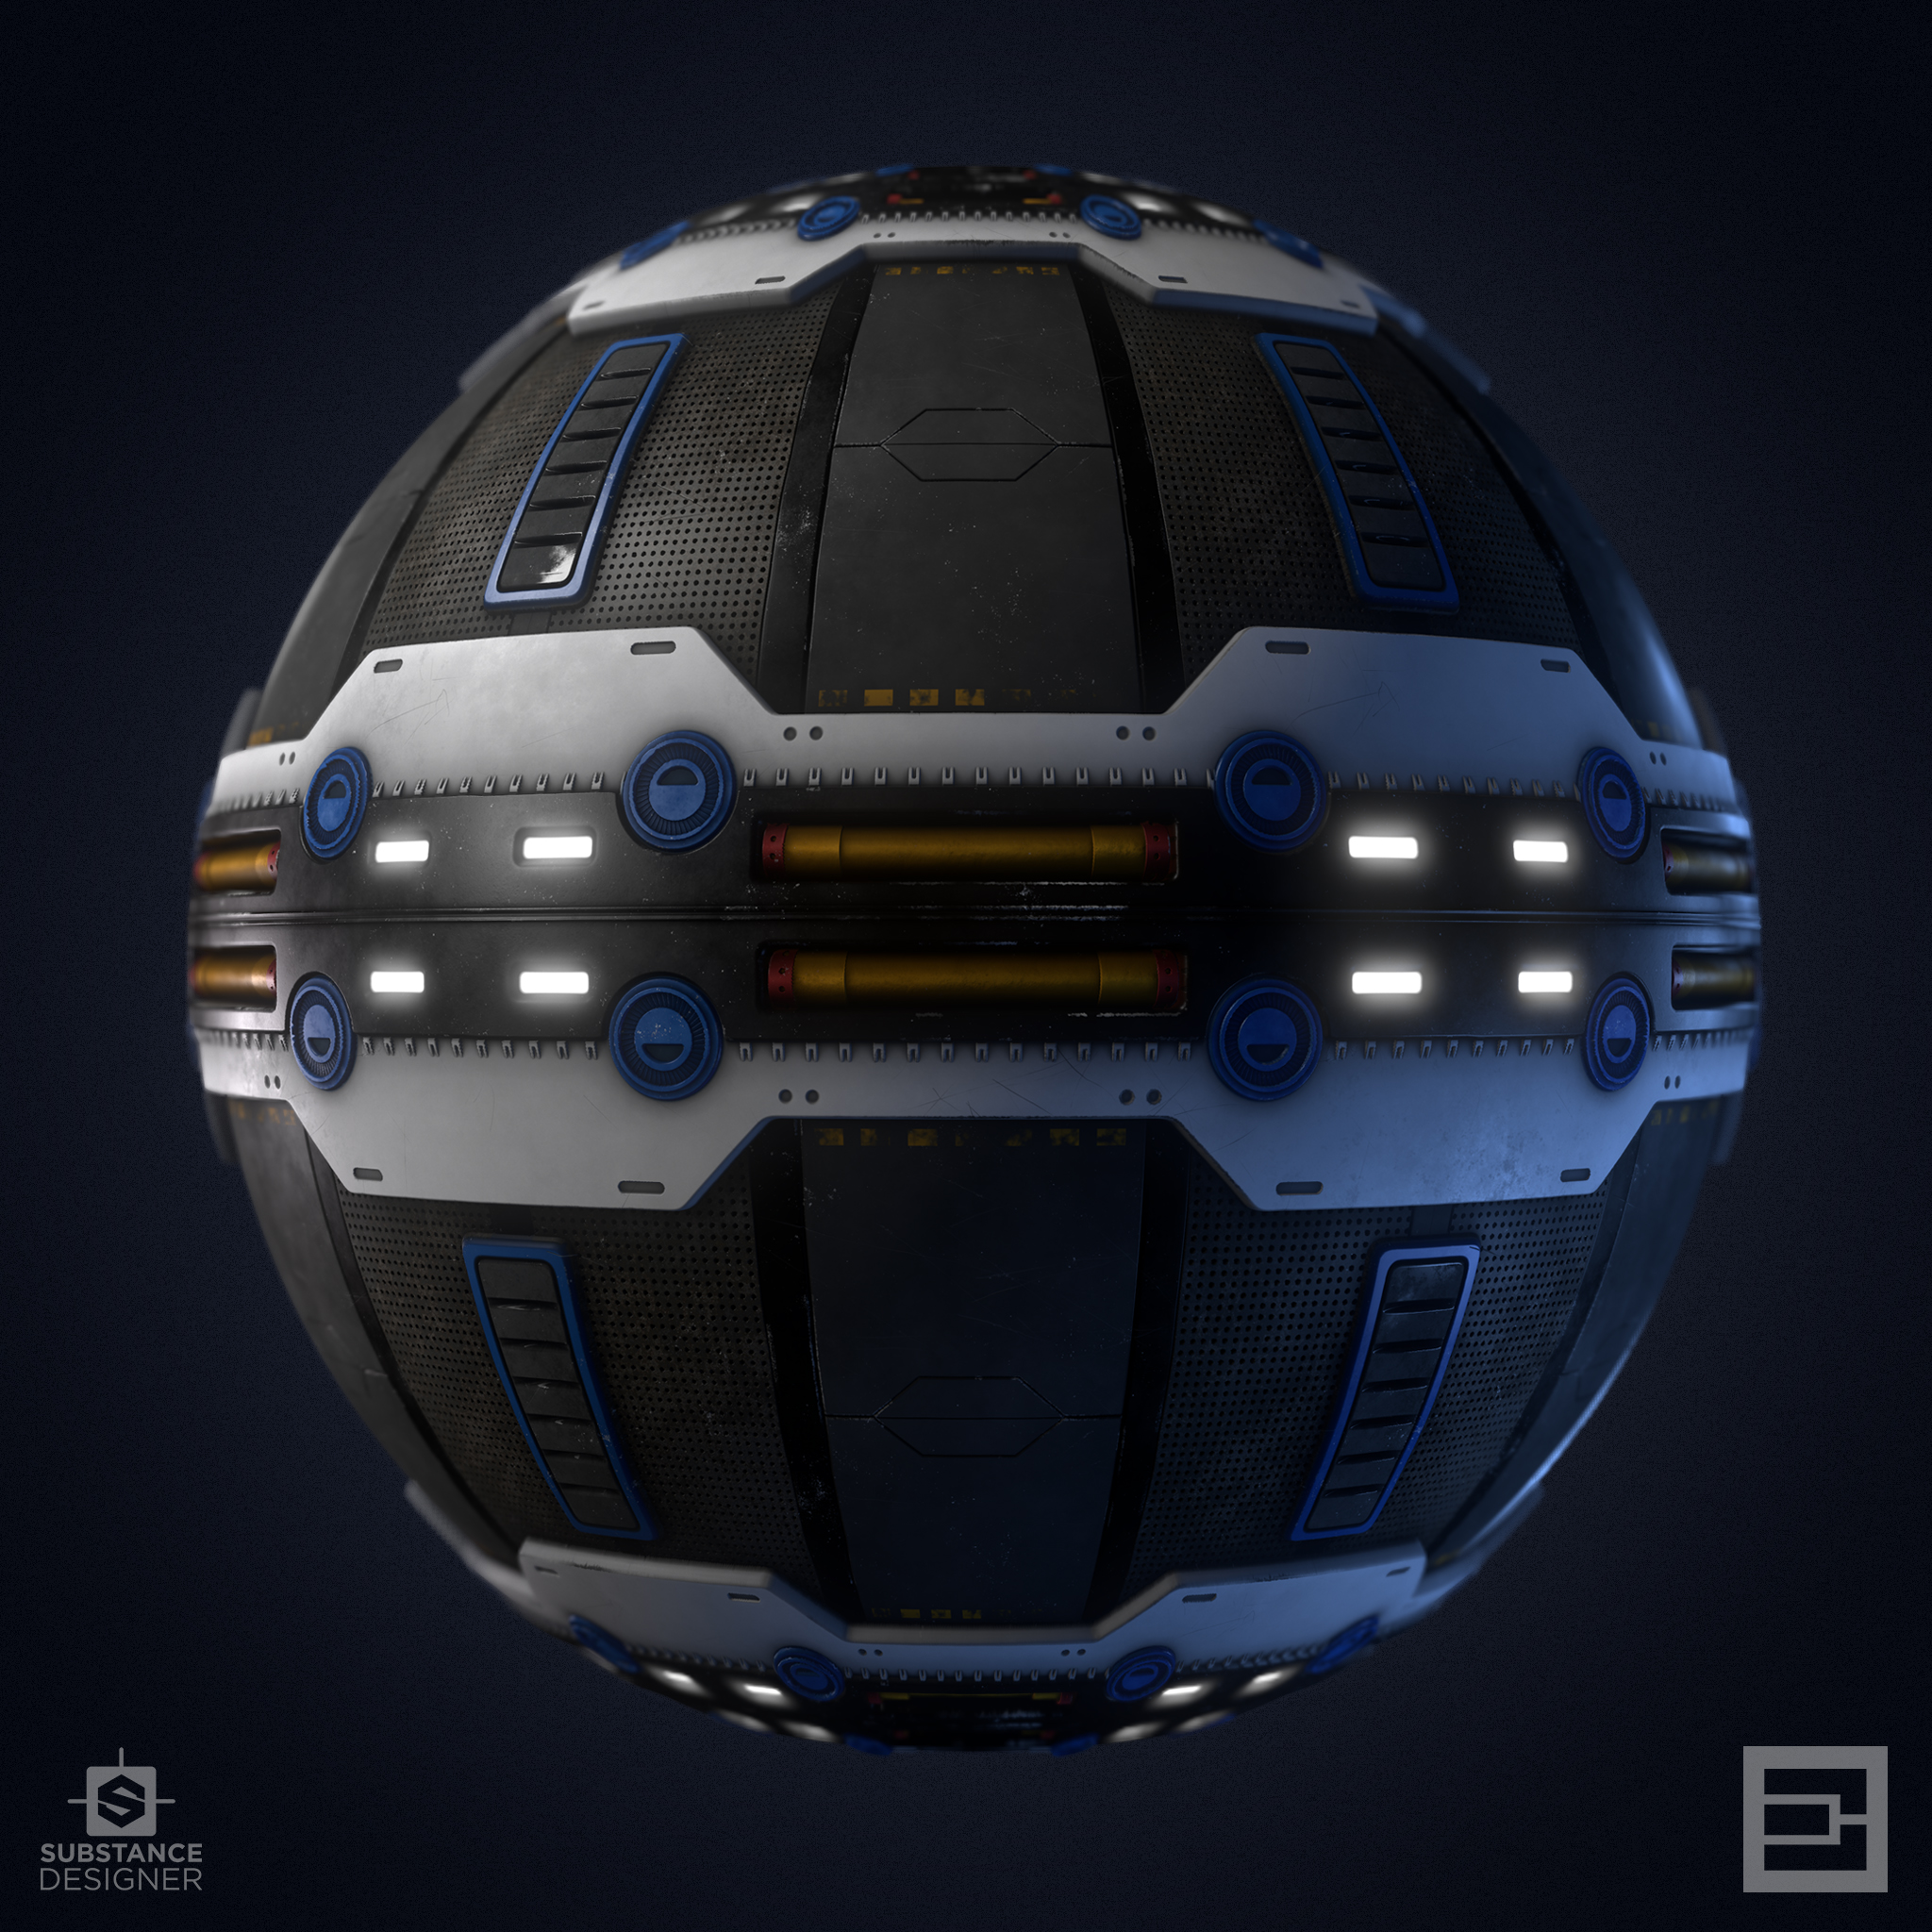 SciFi_Floor_01_Sphere.jpg